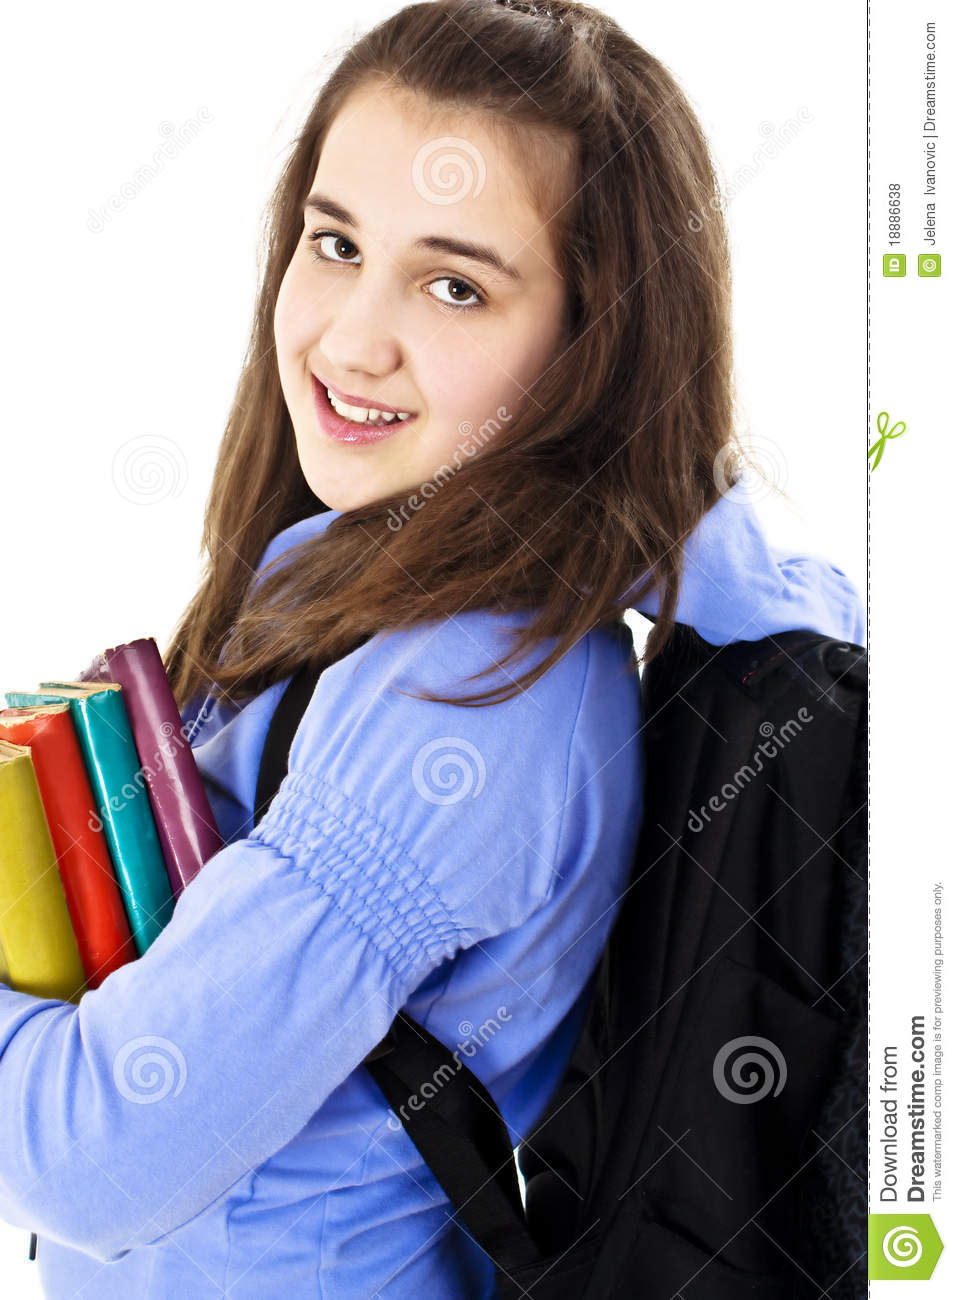 College Student With Backpack And Books Royalty Free Stock Photos ...